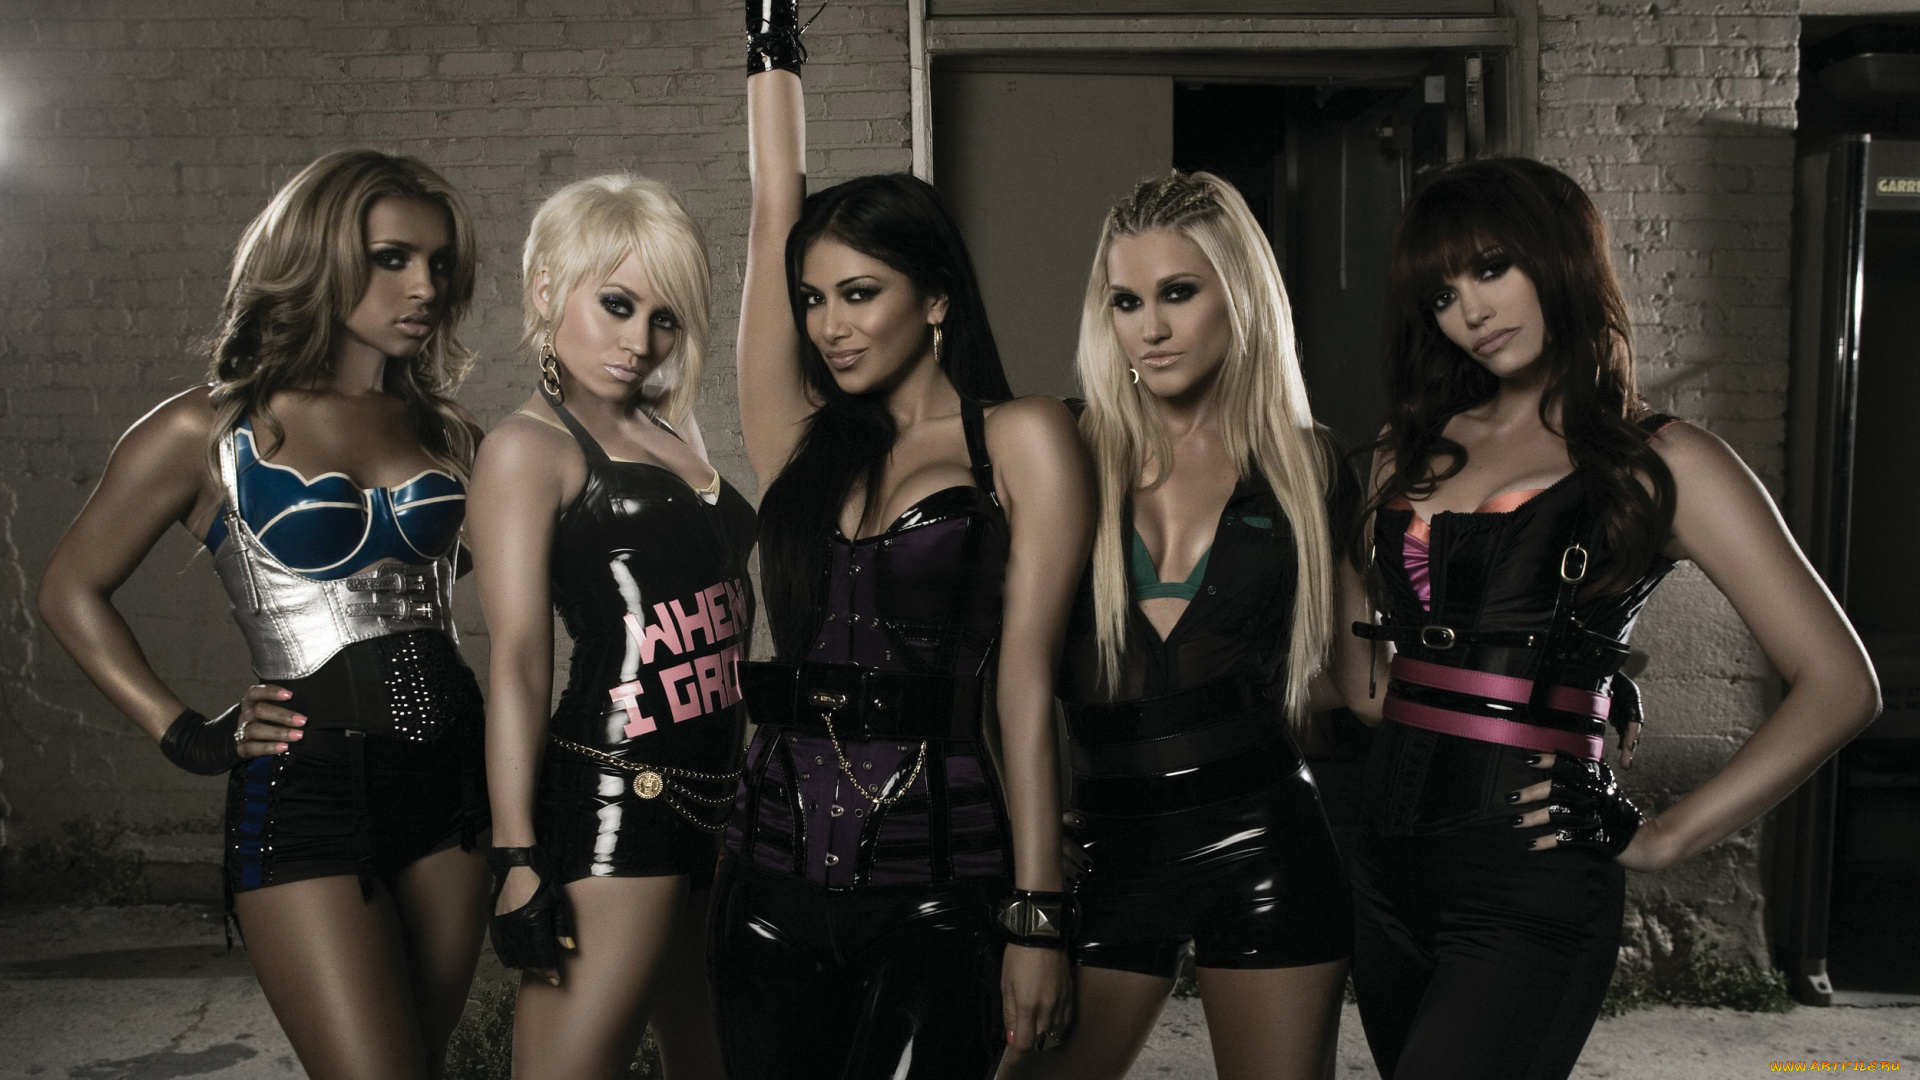 s-sexy-female-music-group-m-girls-shaved-girlfriend